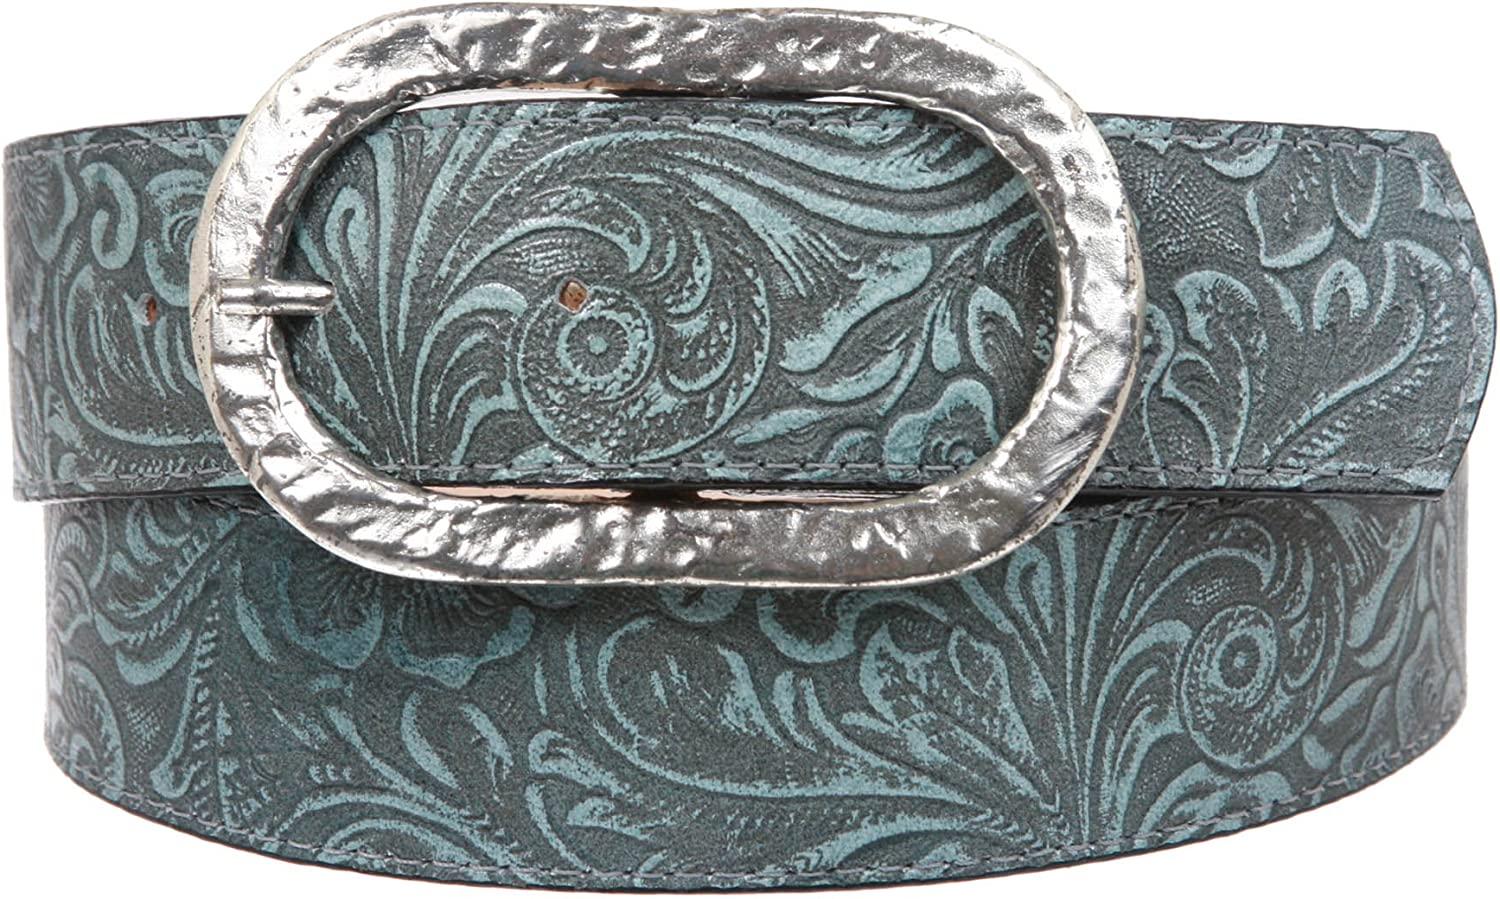 1 1 2 Inch Floral Engraving Leather Belt with oval buckle, bluee   36